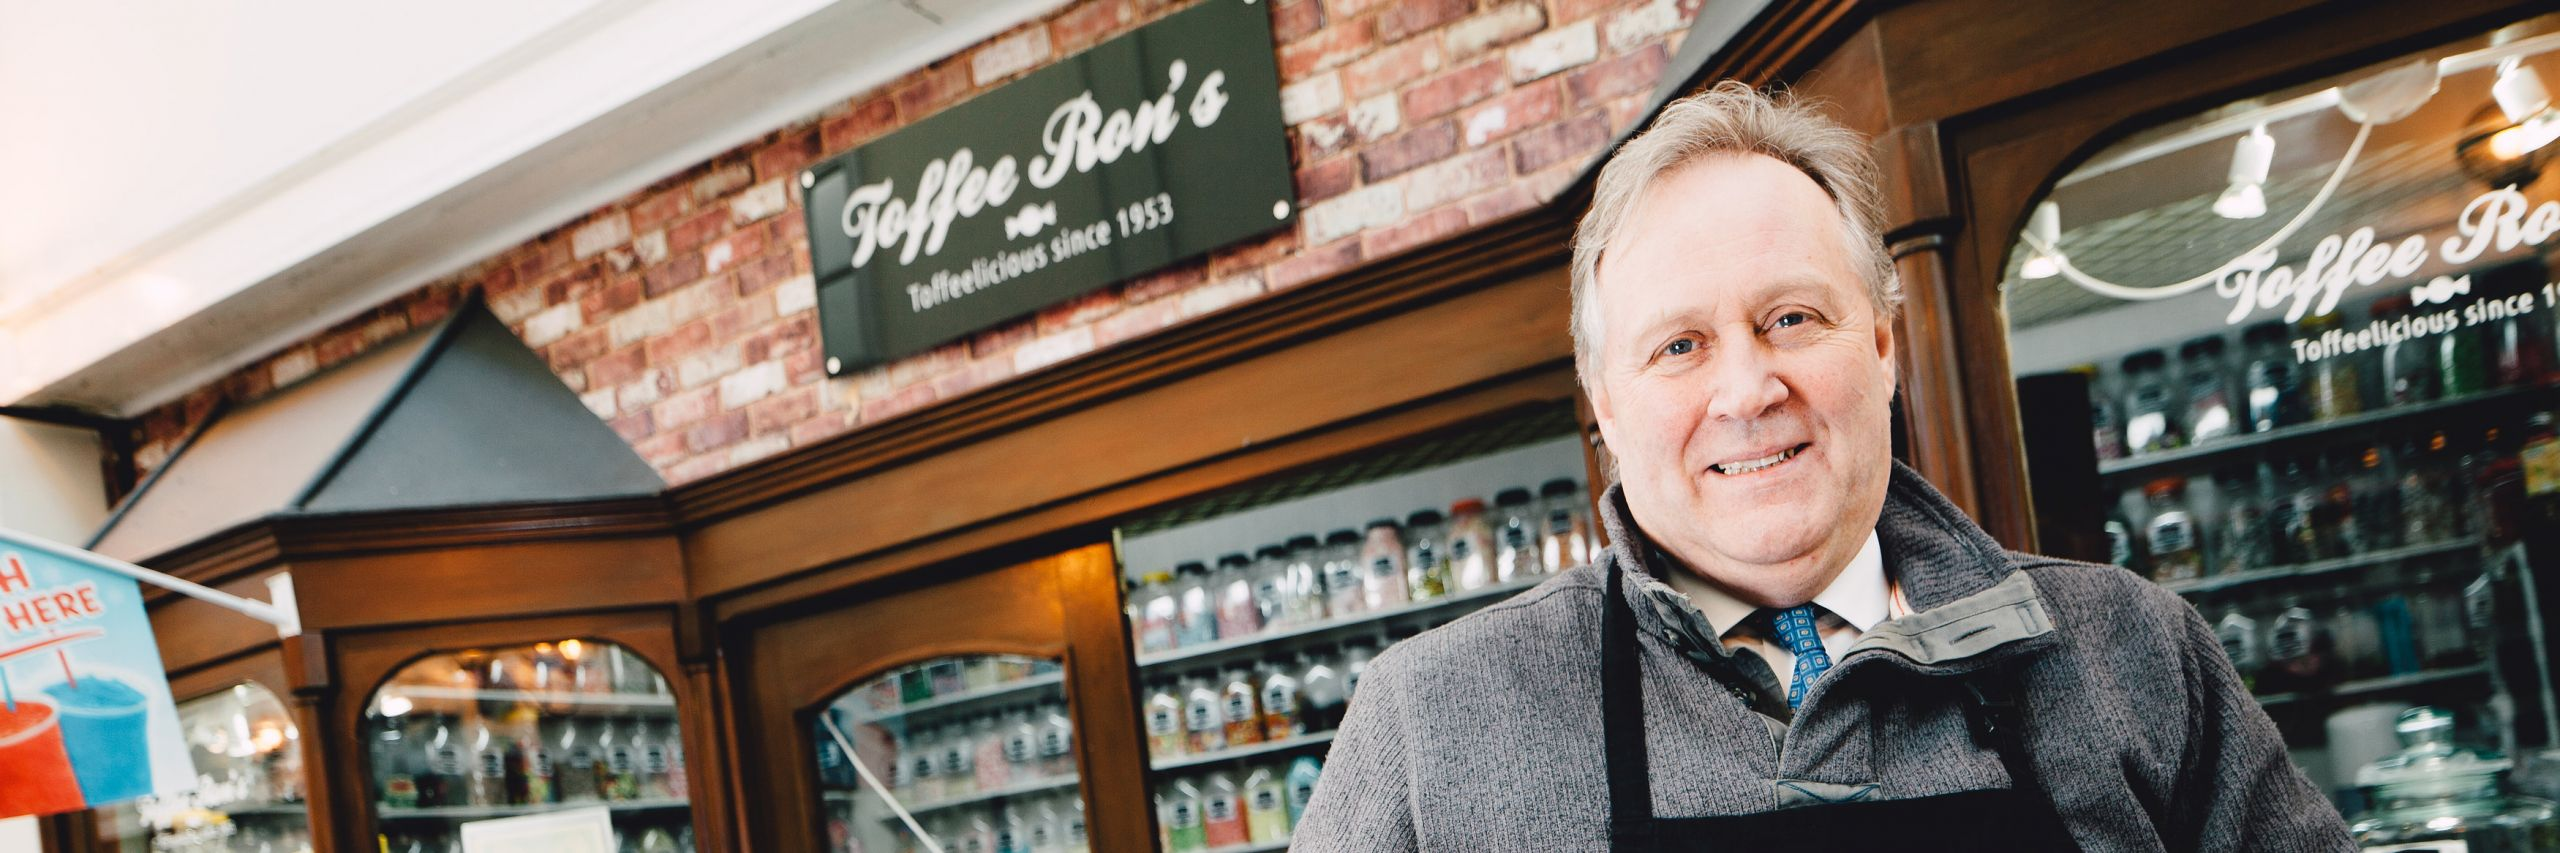 Toffee Ron's Wigan